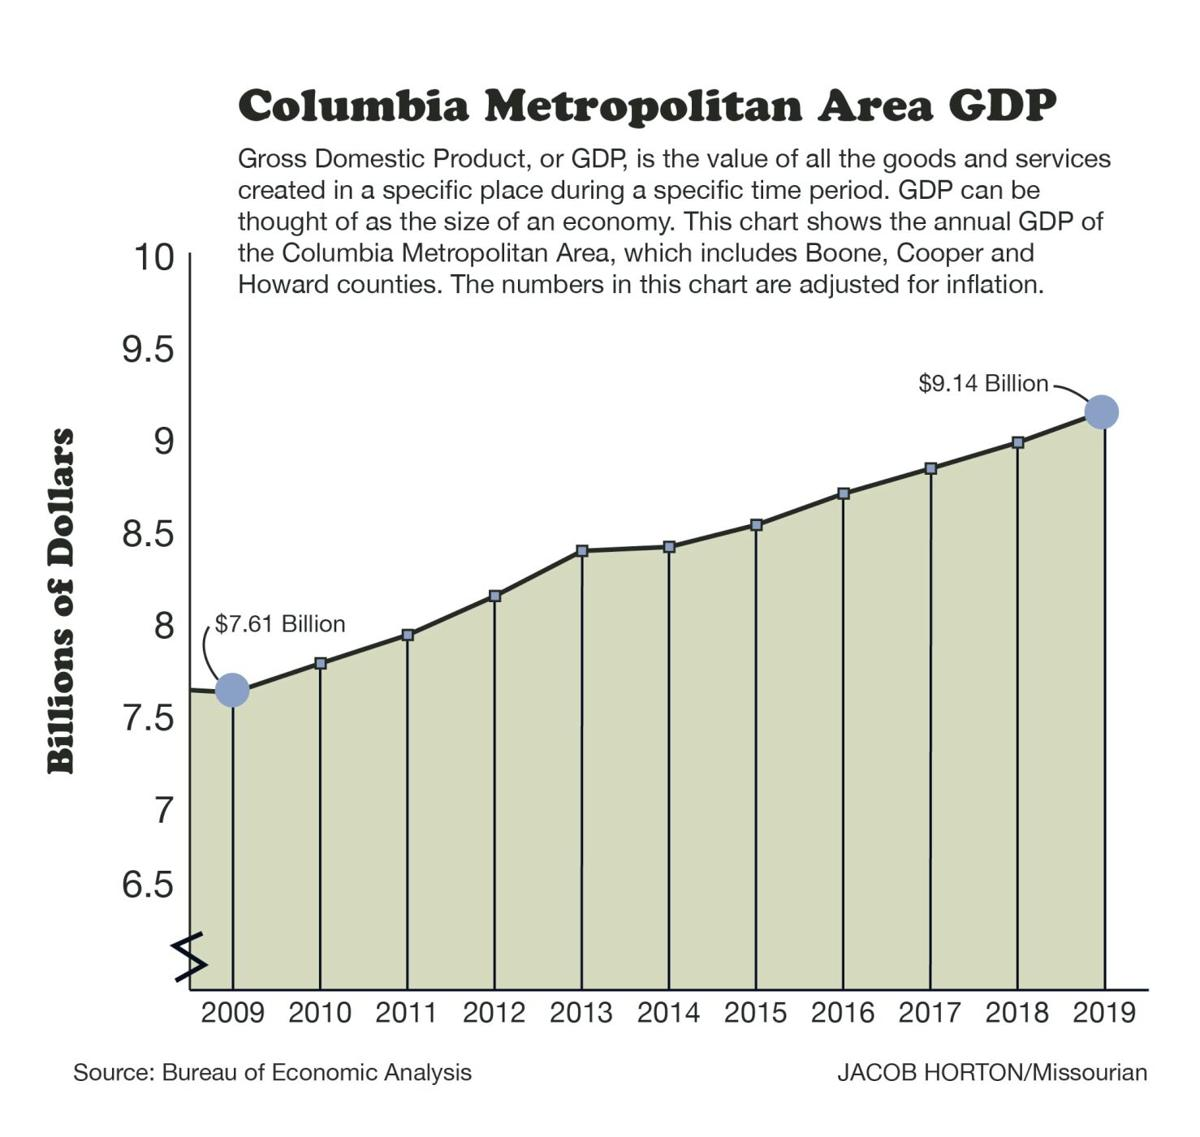 Columbia Metropolitan Area GDP